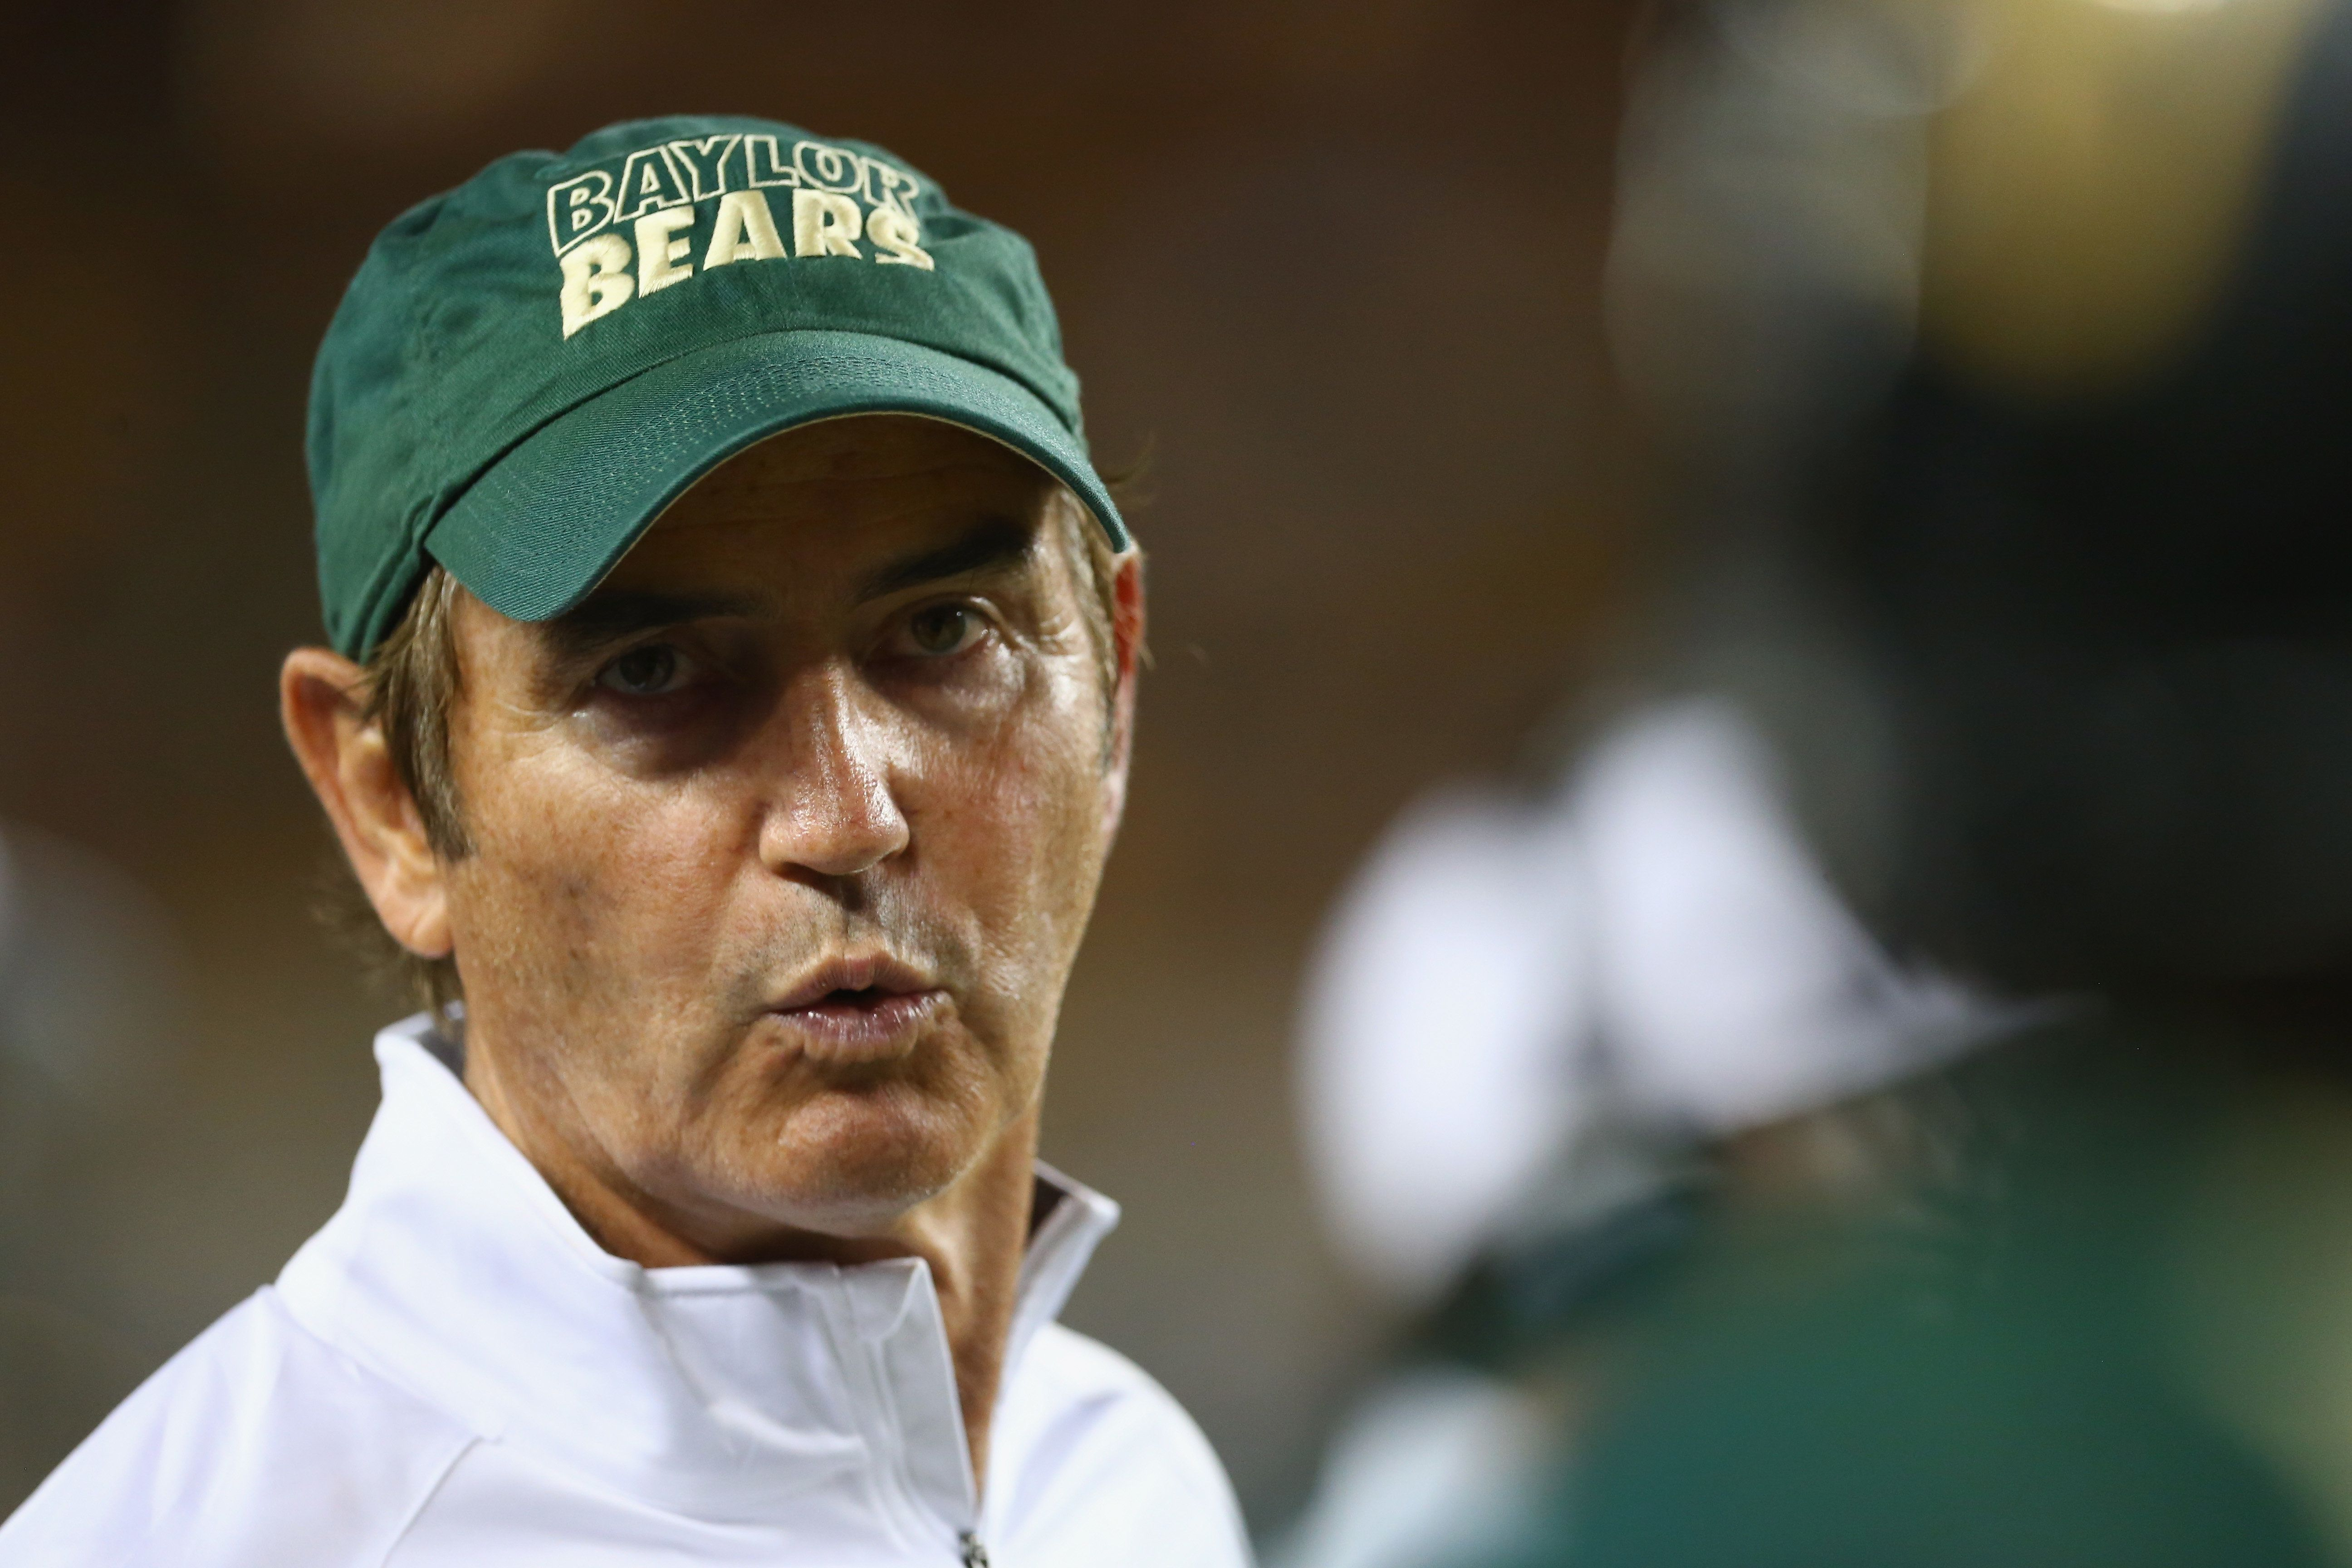 Baylor head coach Art Briles will be terminated as head coach over the Pepper Hamilton Report, the university announced